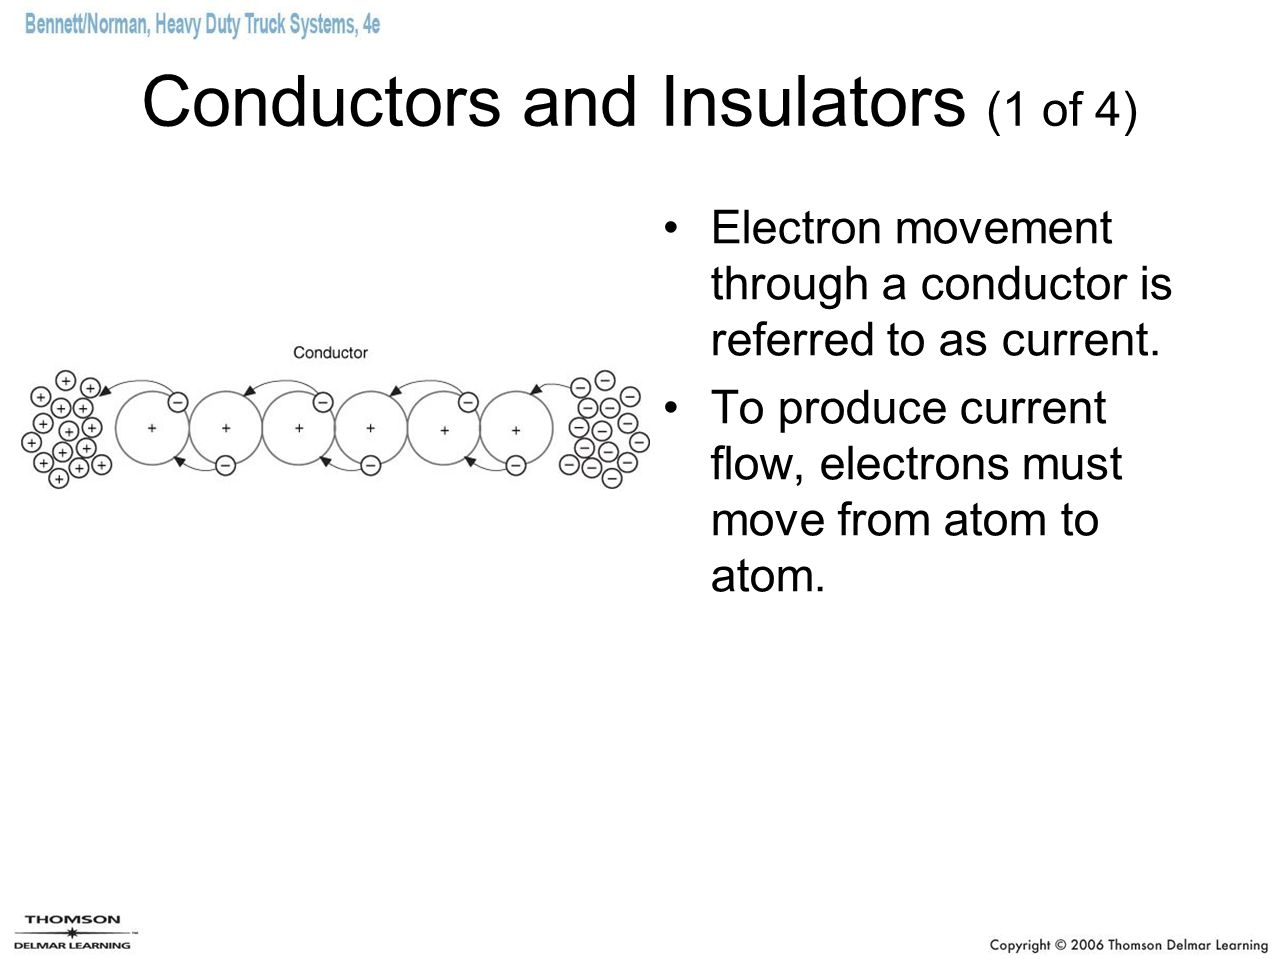 Conductors and Insulators (1 of 4)